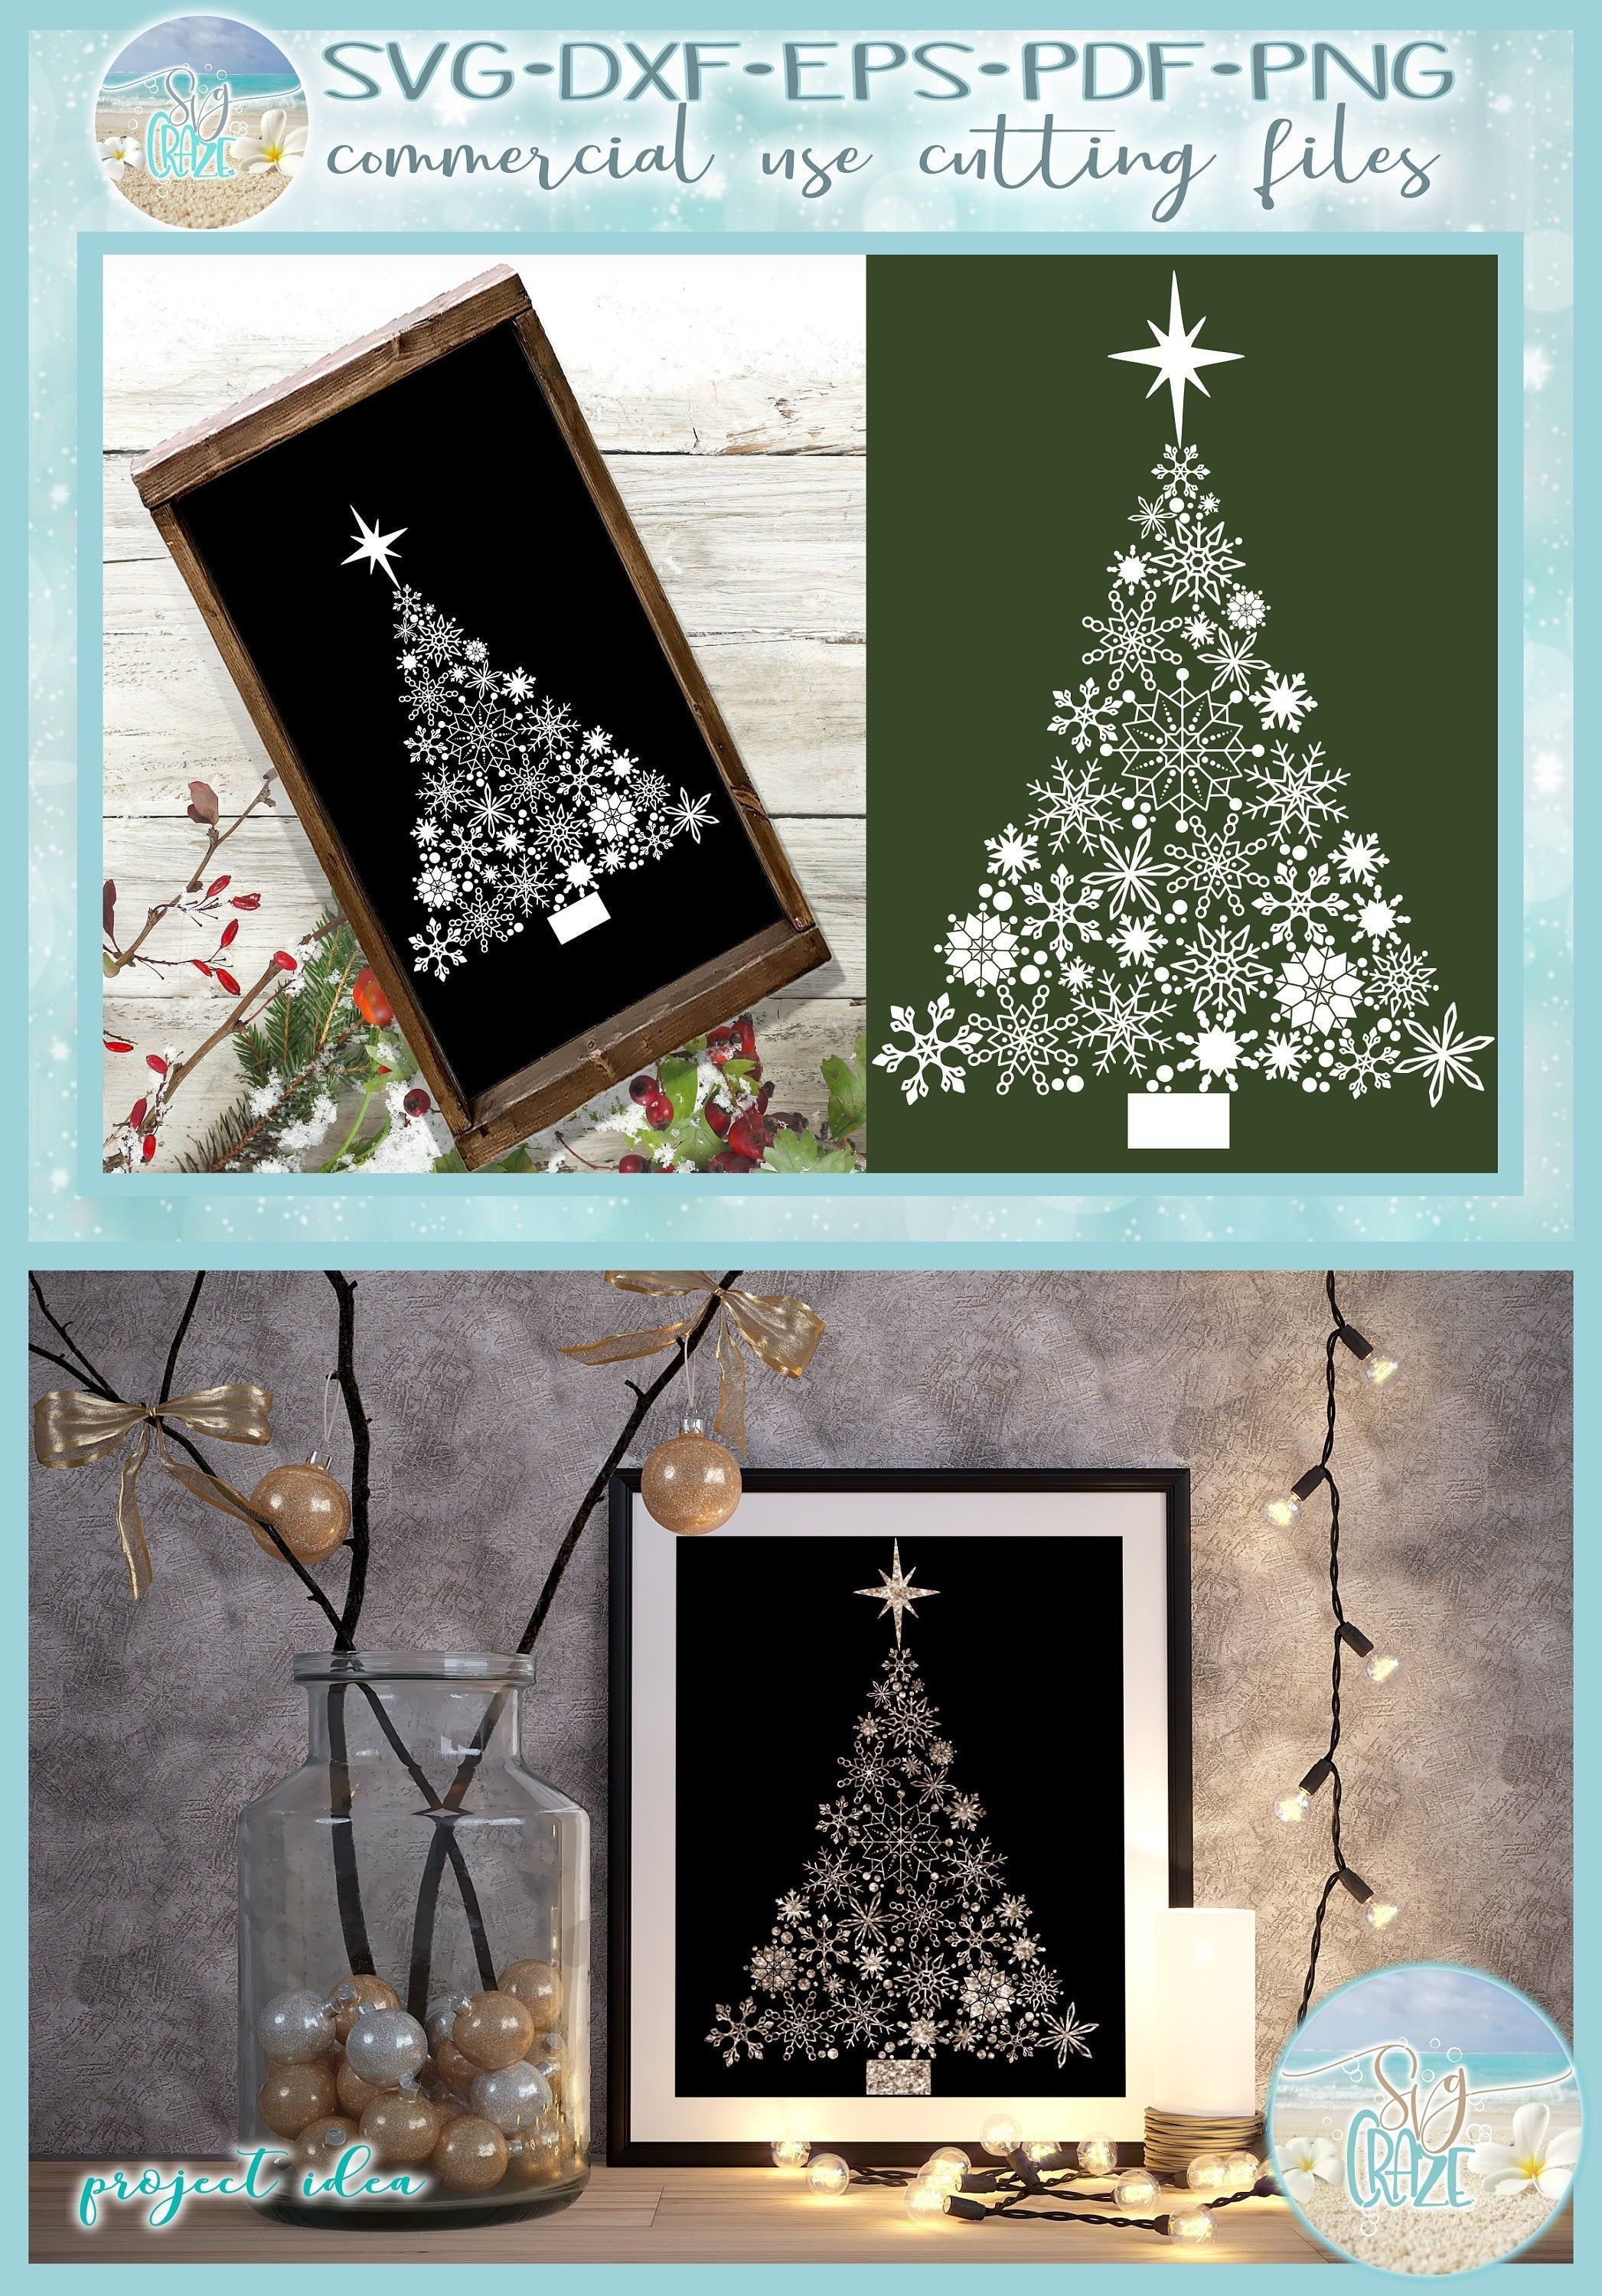 Snowflake Christmas Tree With Star Svg Dxf Eps Pdf Png Files Etsy In 2020 Star Svg Christmas Svg Svg